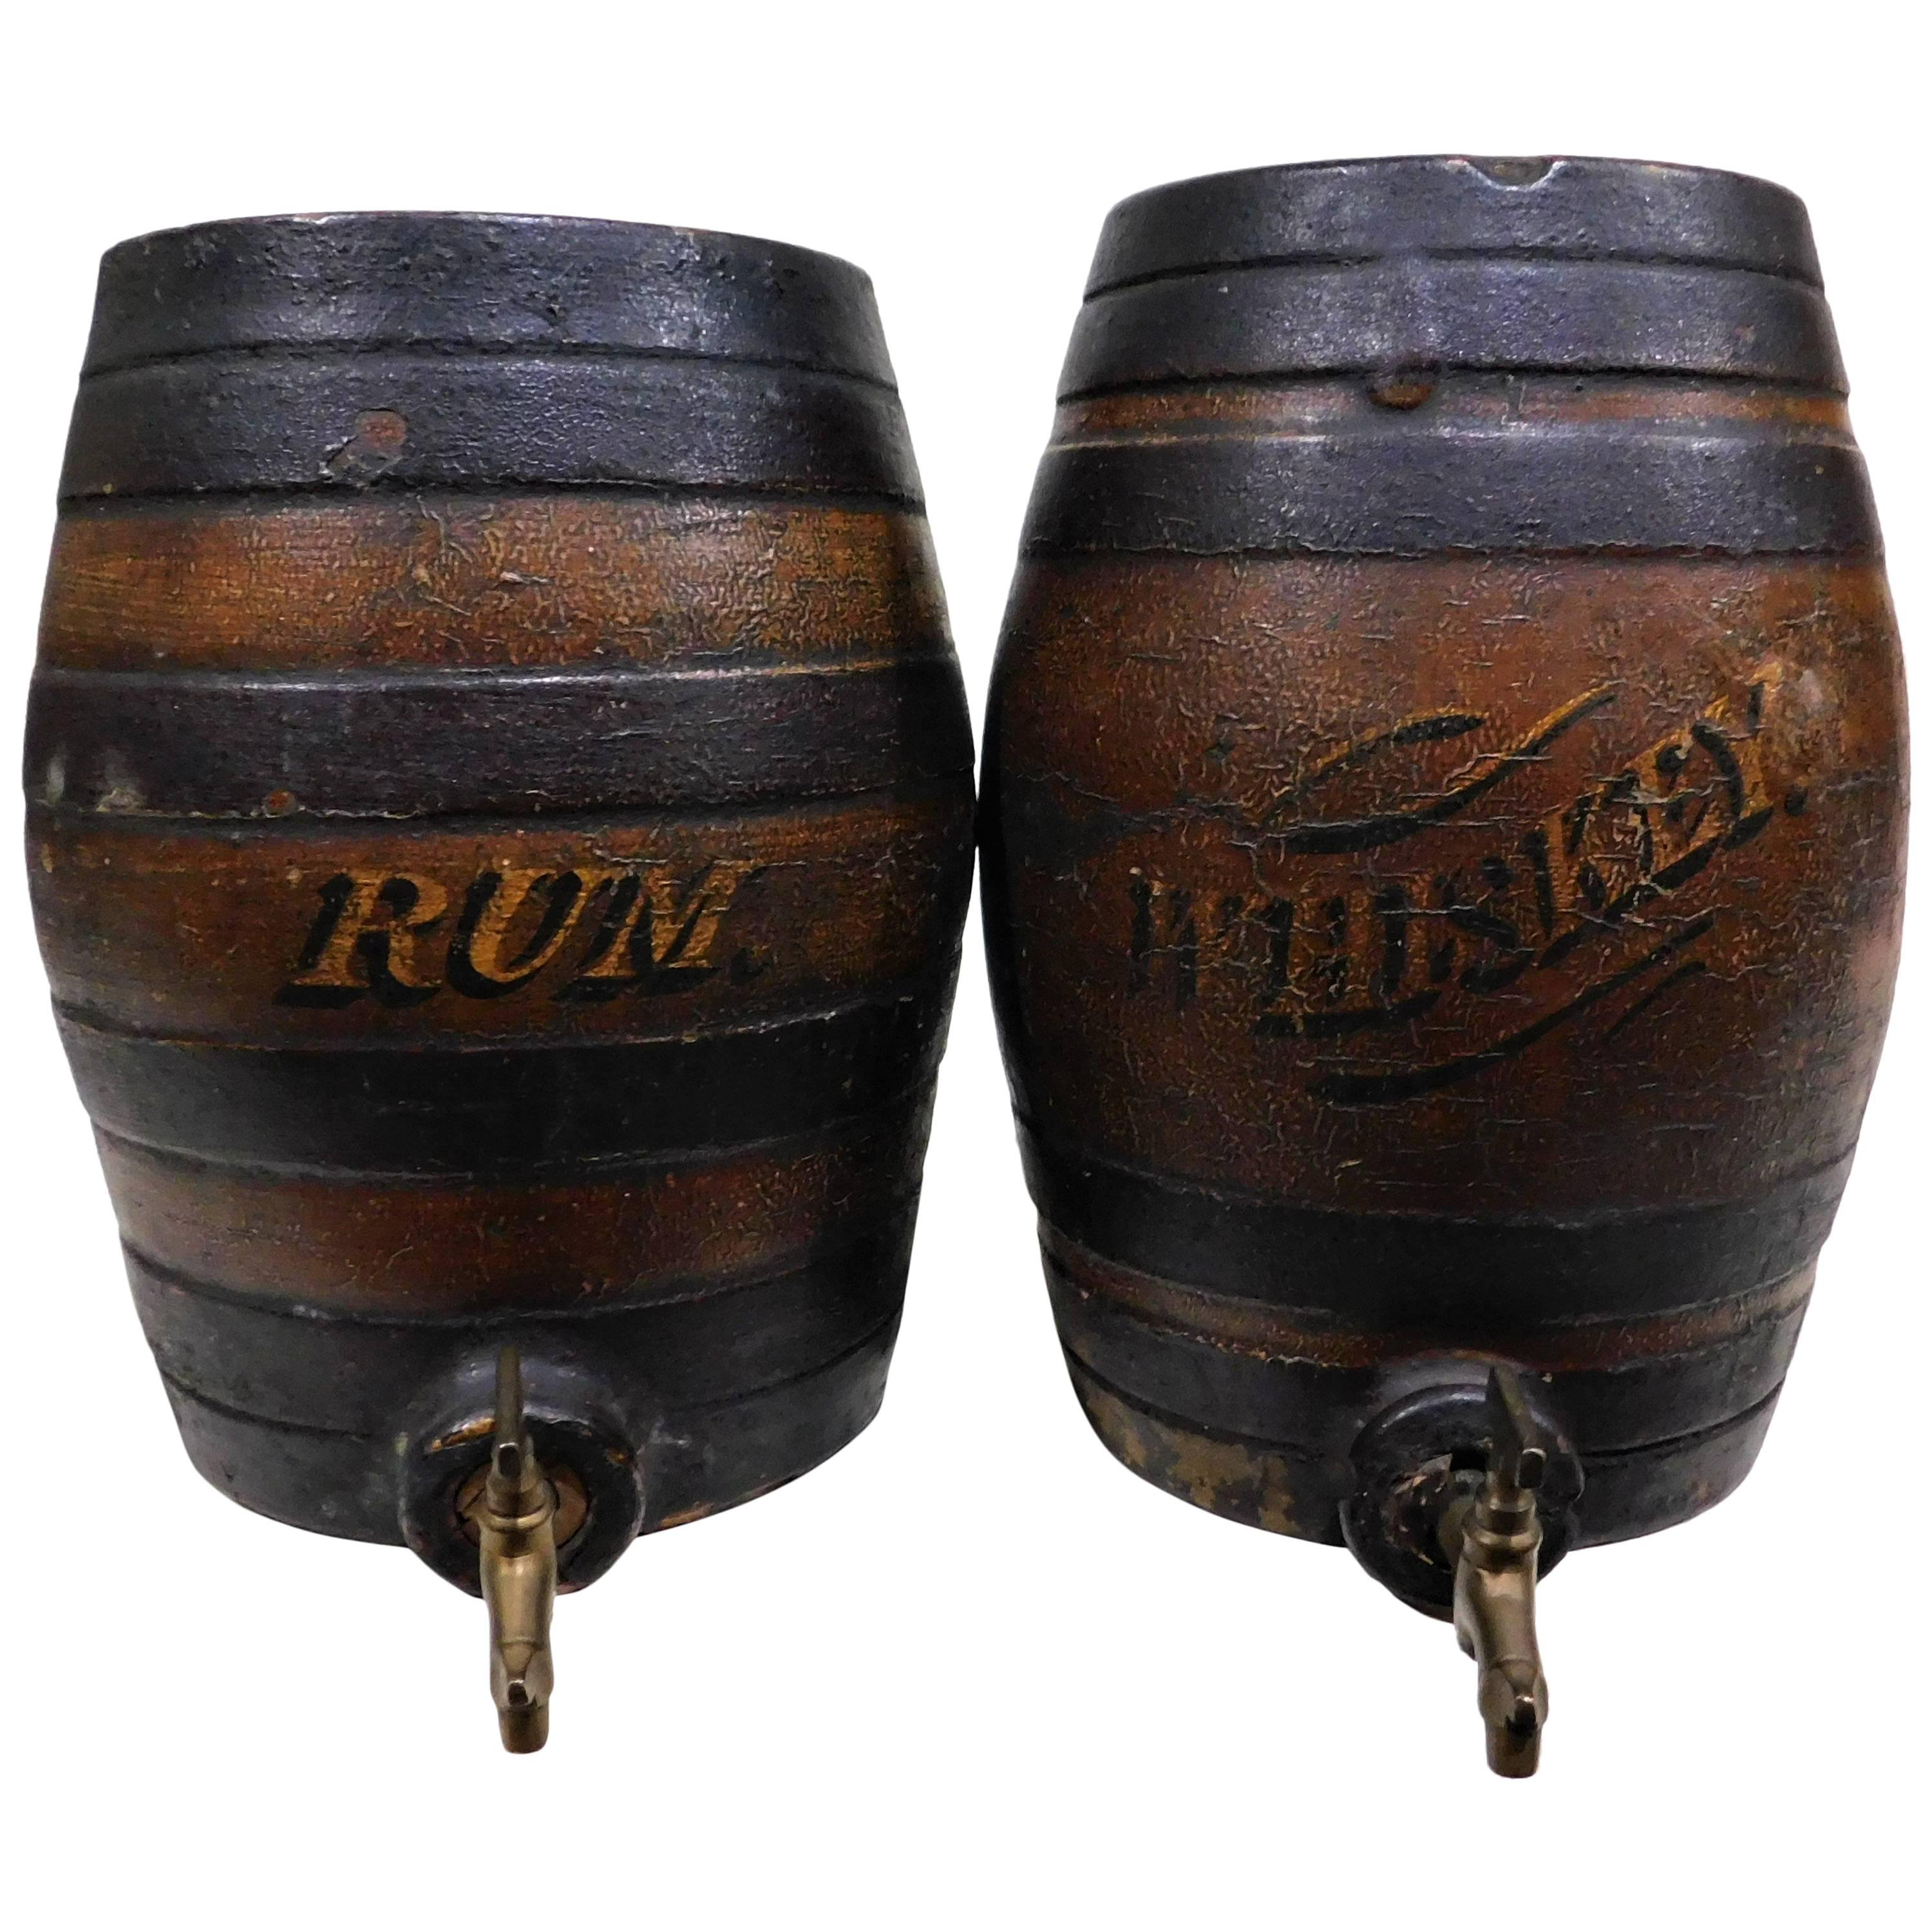 Pair of Victorian Earthenware Pottery Rum and Whiskey Liquor Cask Barrel Kegs